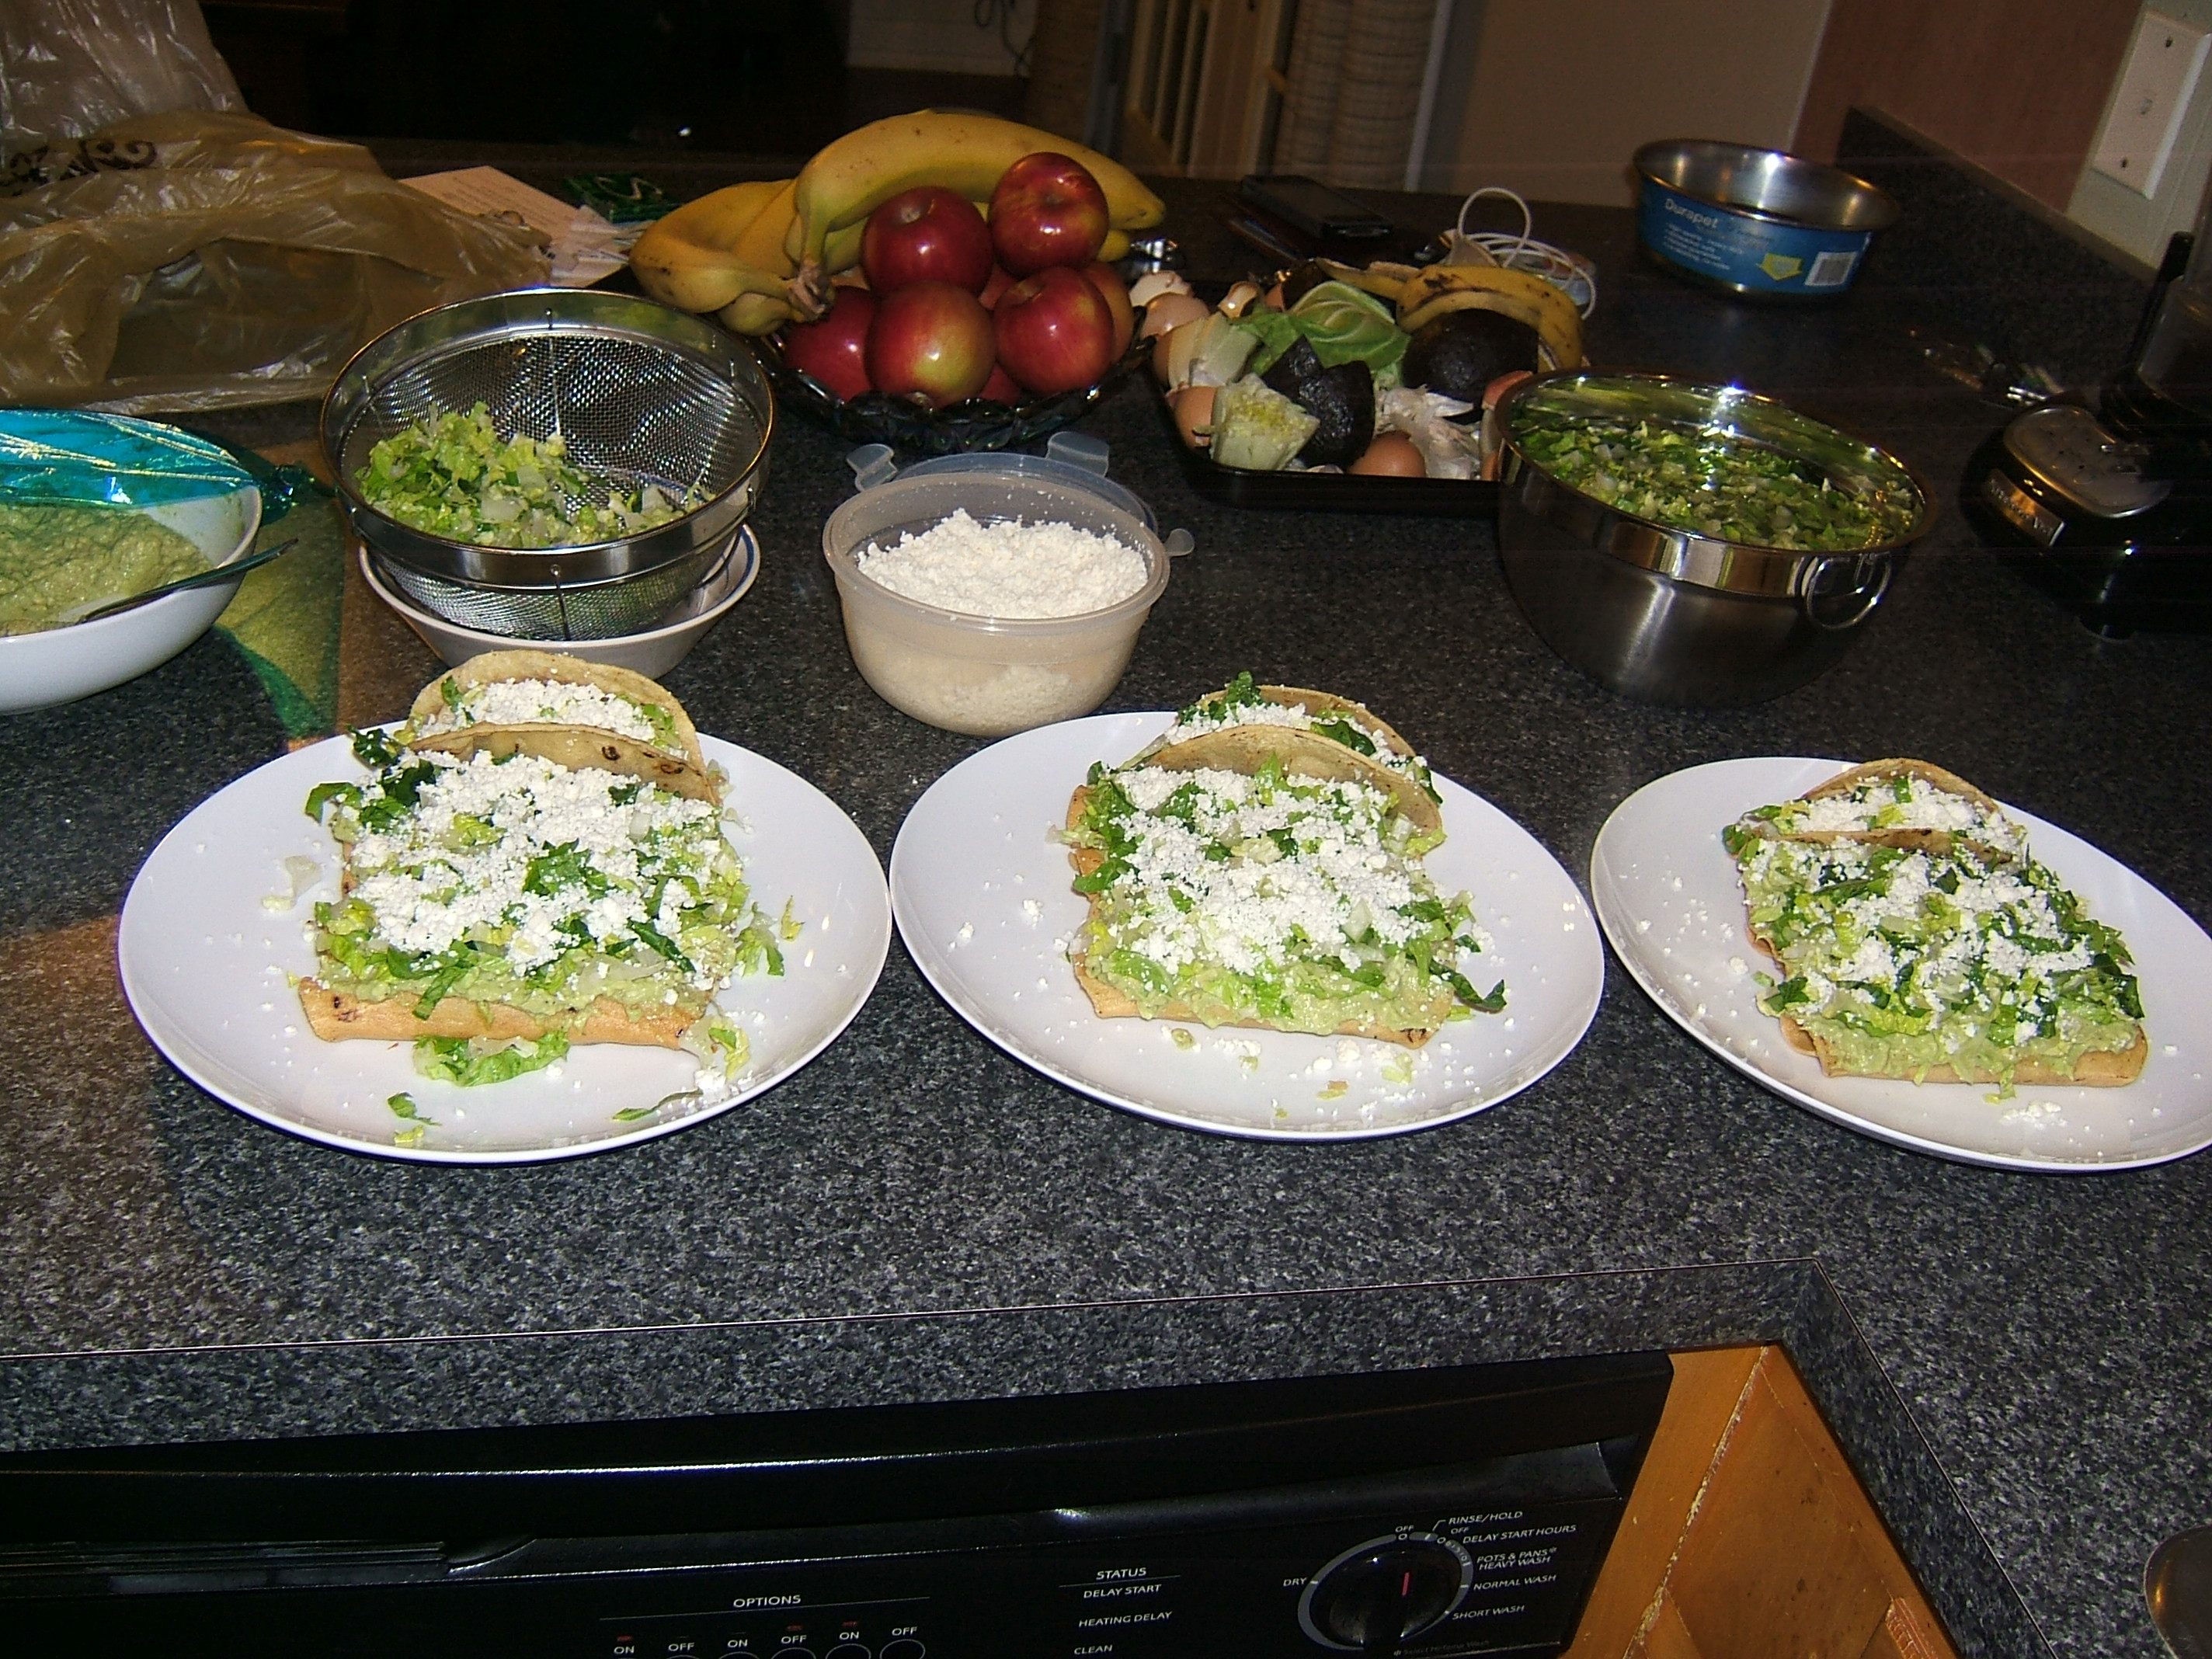 Dishes of flautas and tacos